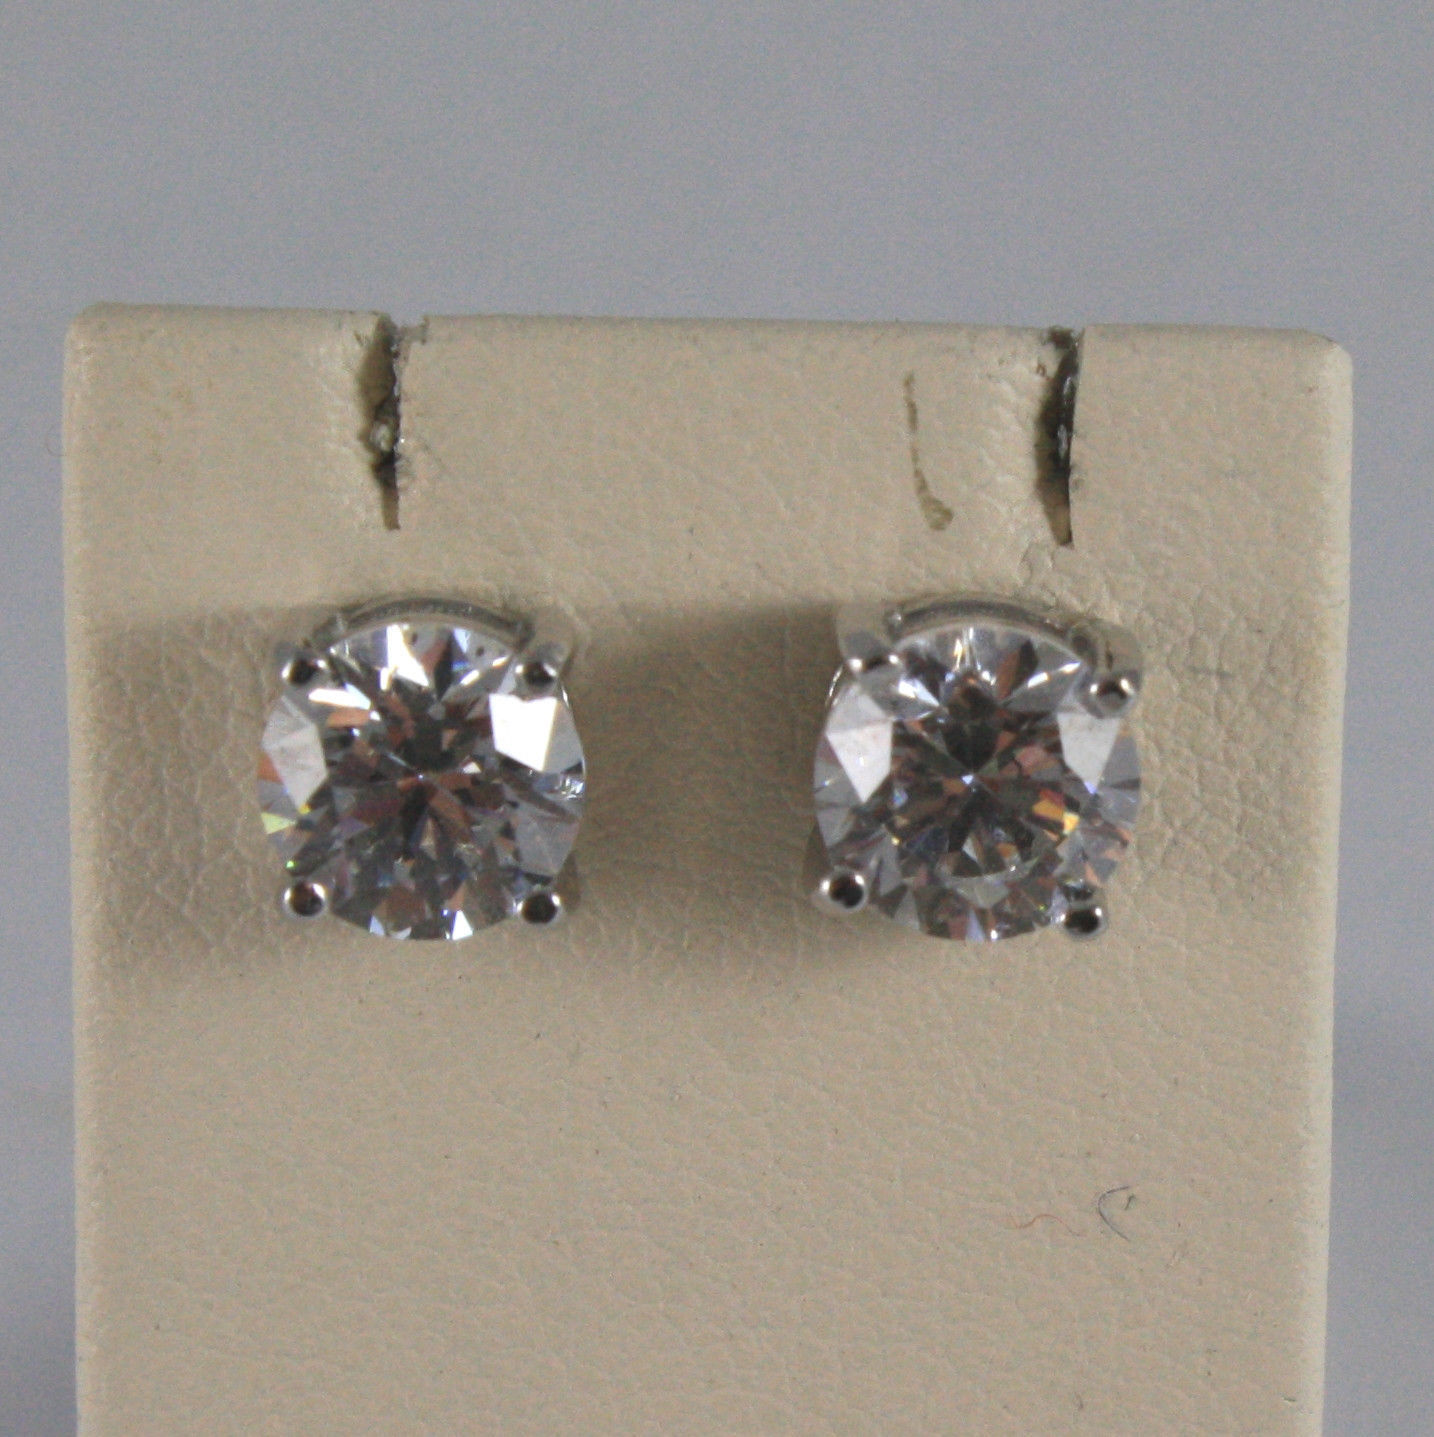 SOLID 18K WHITE GOLD EARRINGS, WITH FACETED ZIRCONIA WIDTH 0,2 IN, MADE IN ITALY